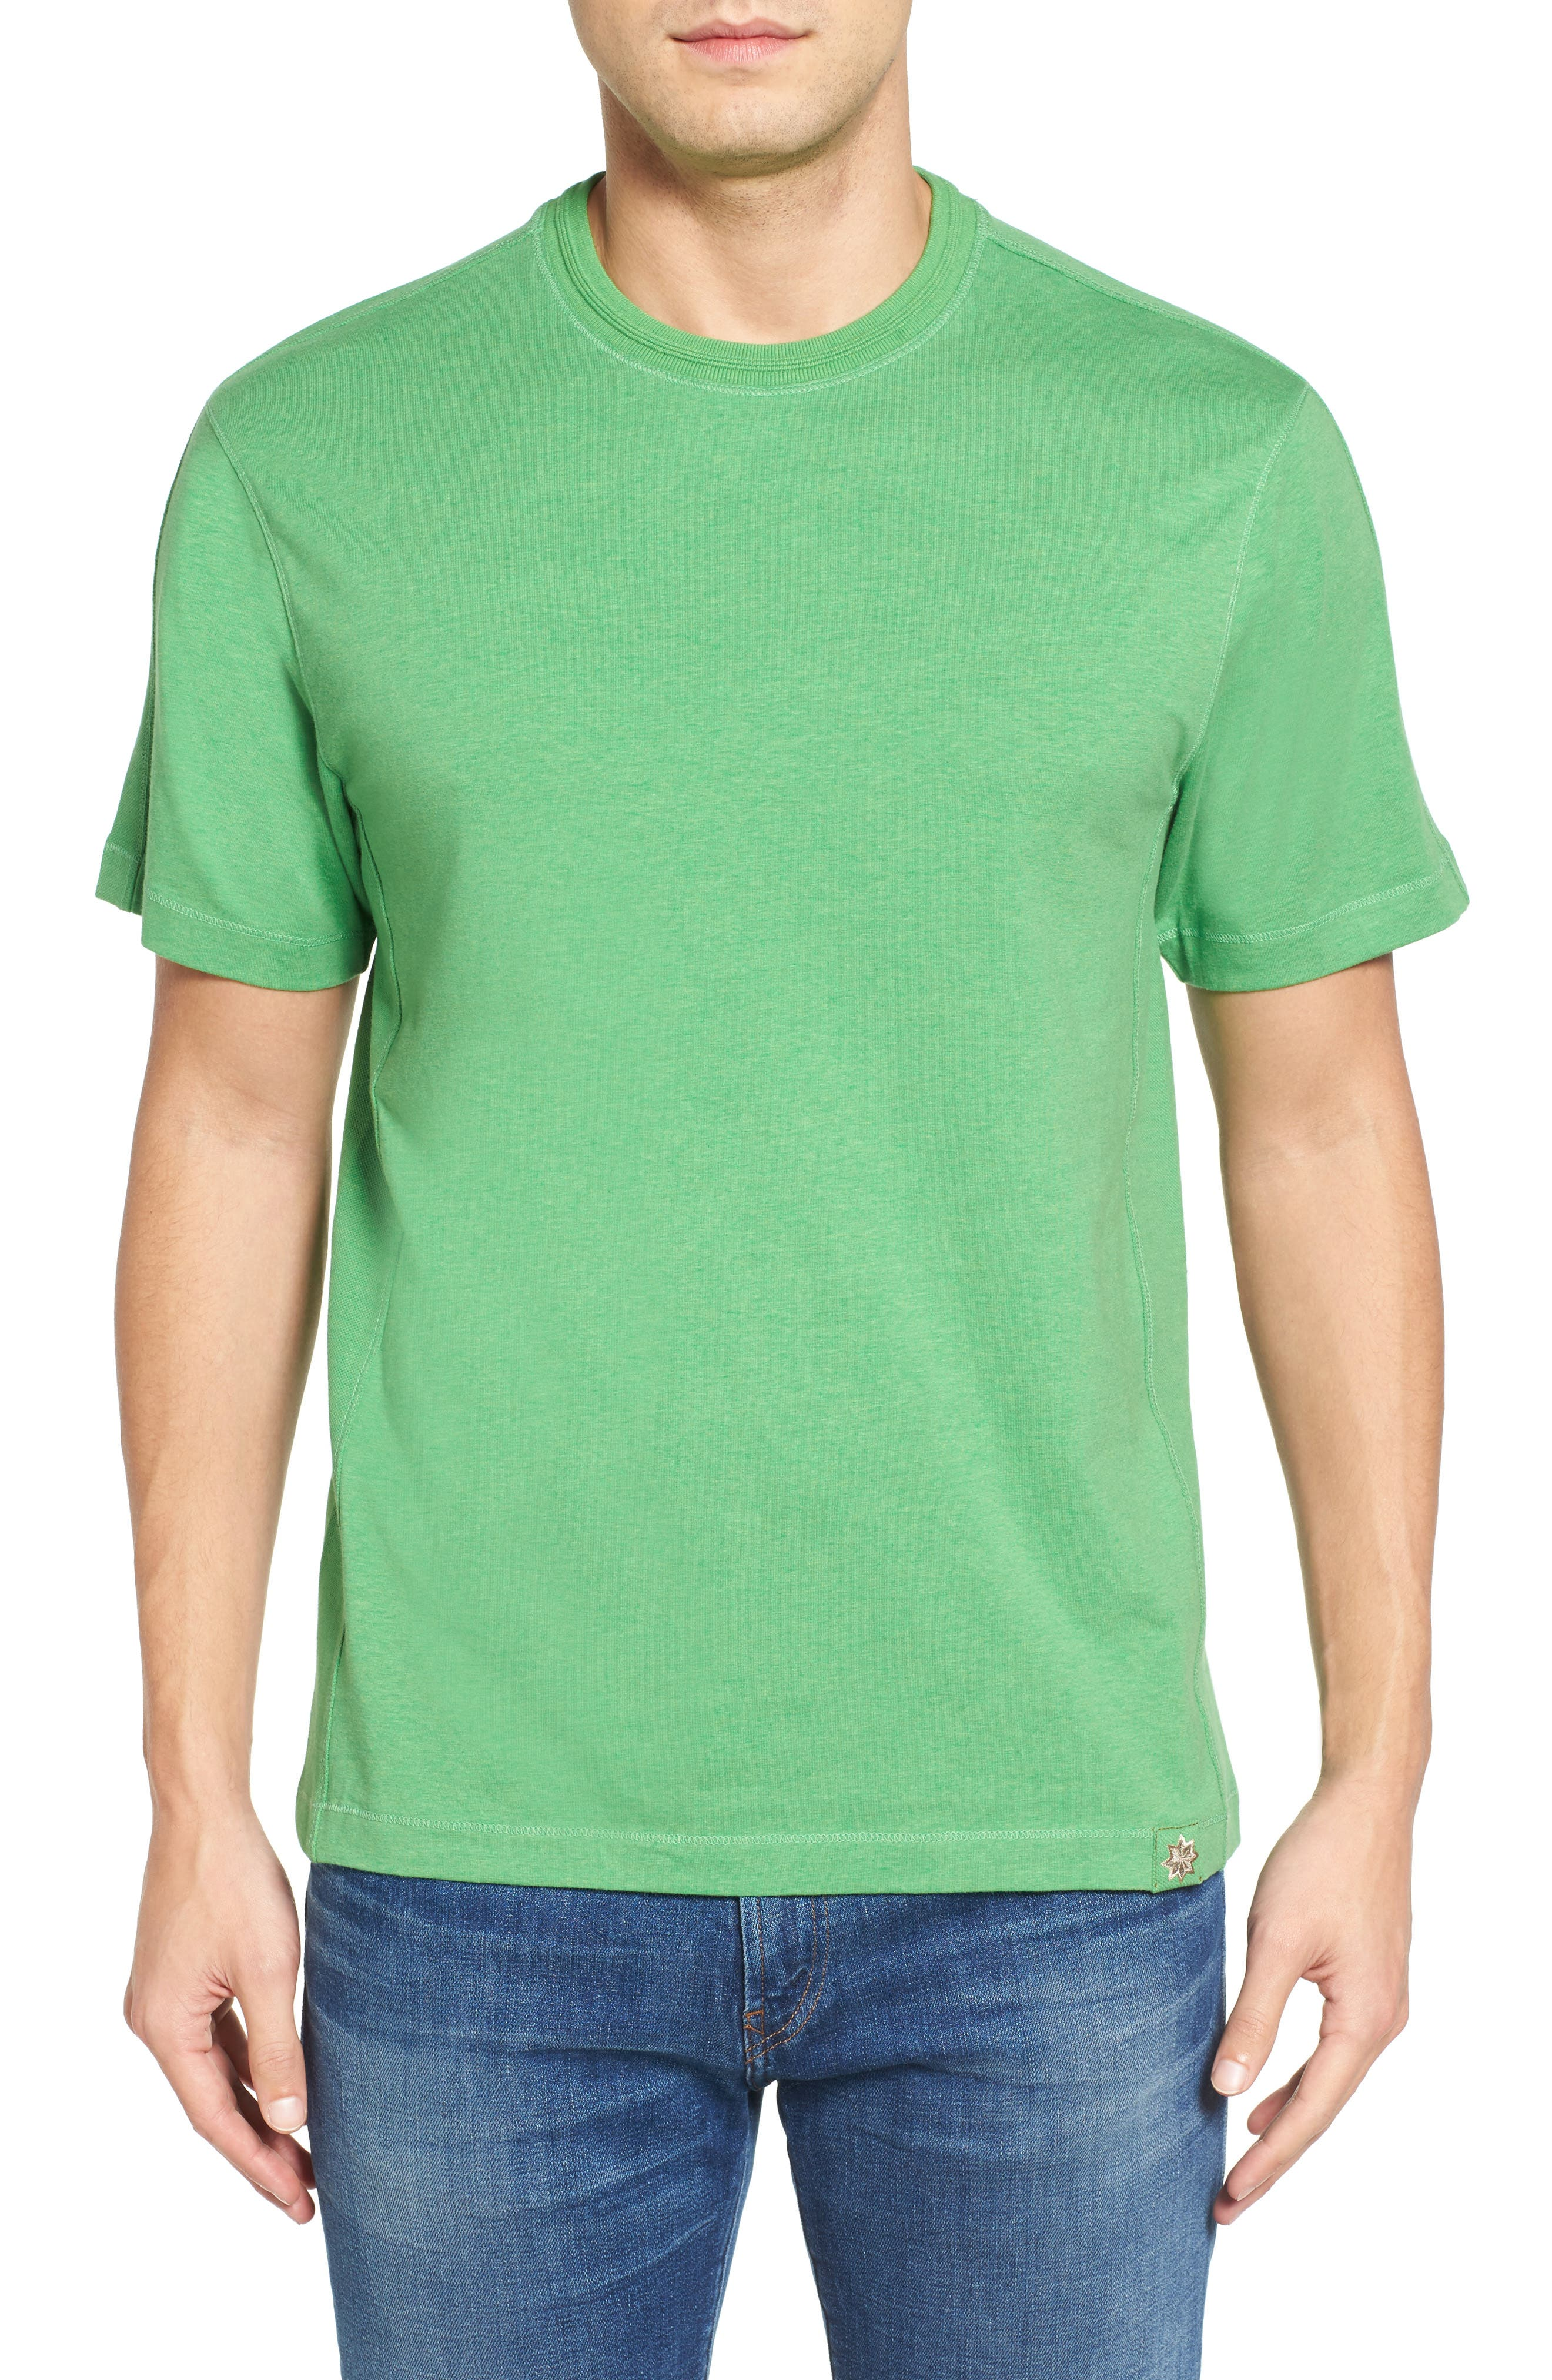 Steve Stretch Jersey T-Shirt,                             Main thumbnail 3, color,